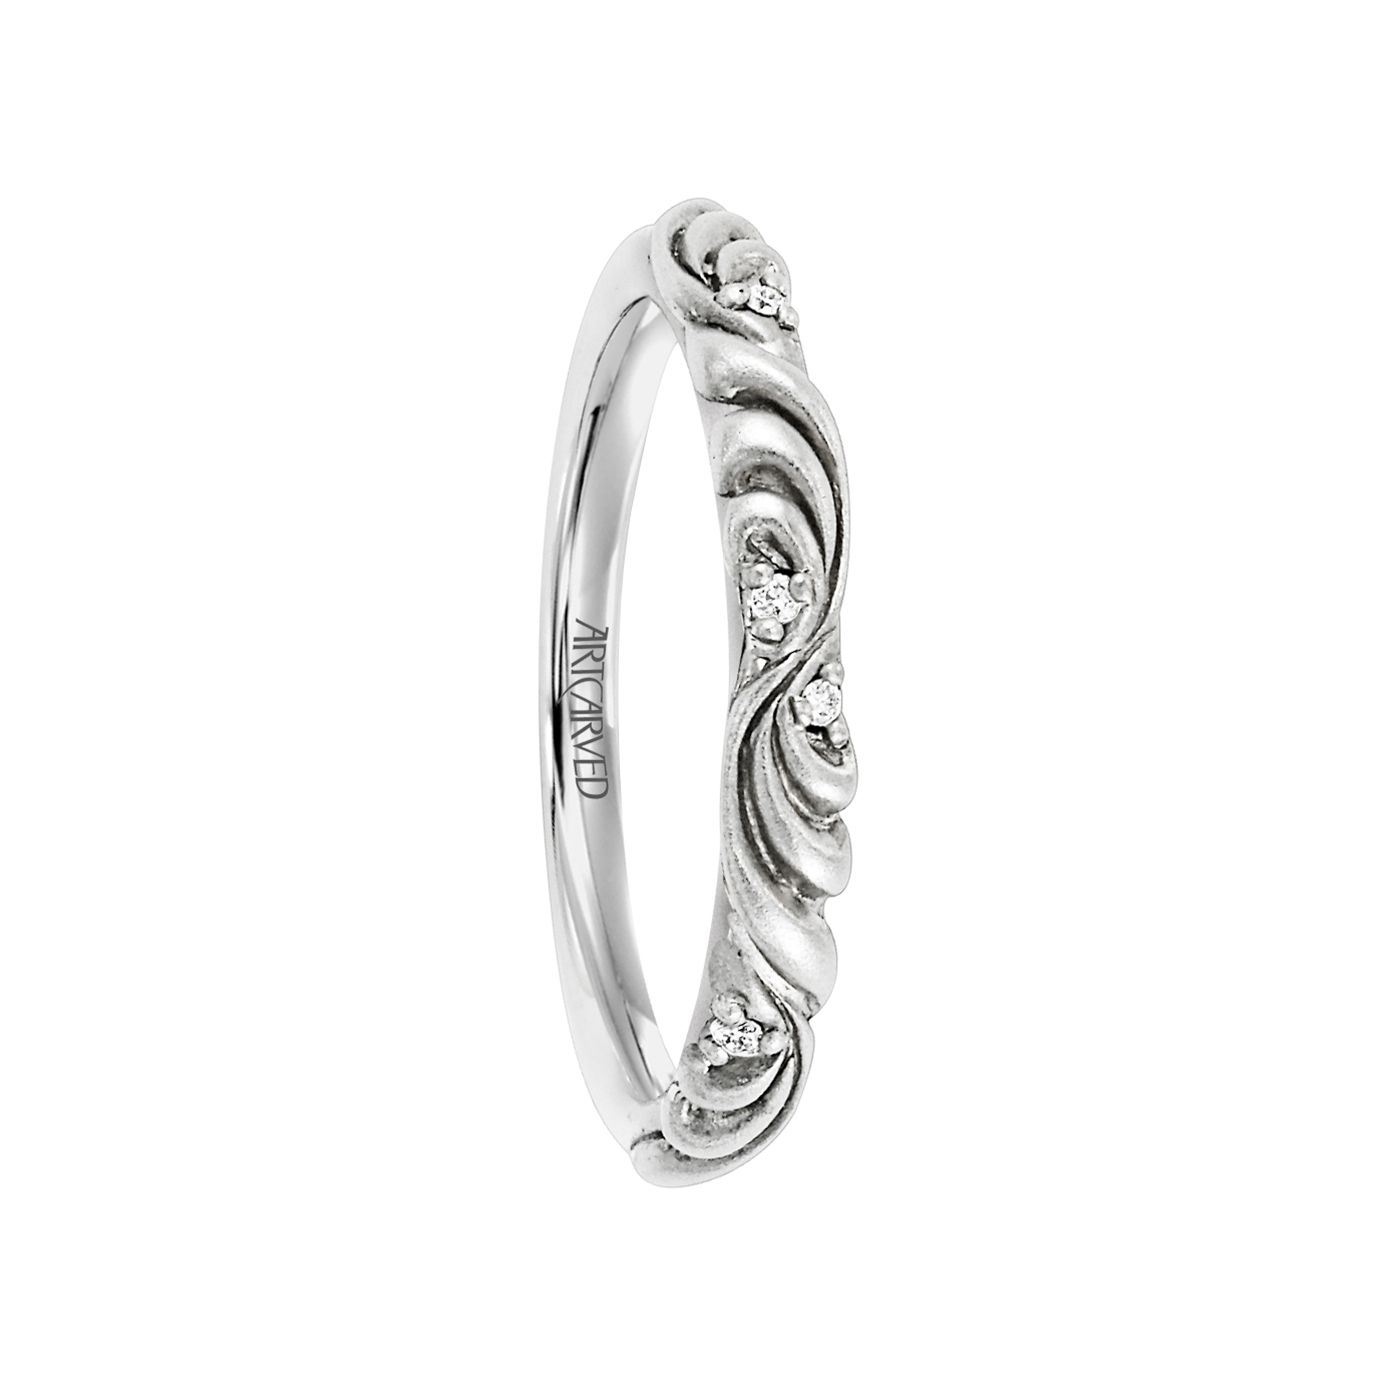 palladium wedding bands Artcarved Rings SUNRISE Womens Palladium Wedding Band with Floral Carving and Diamond Accents 3